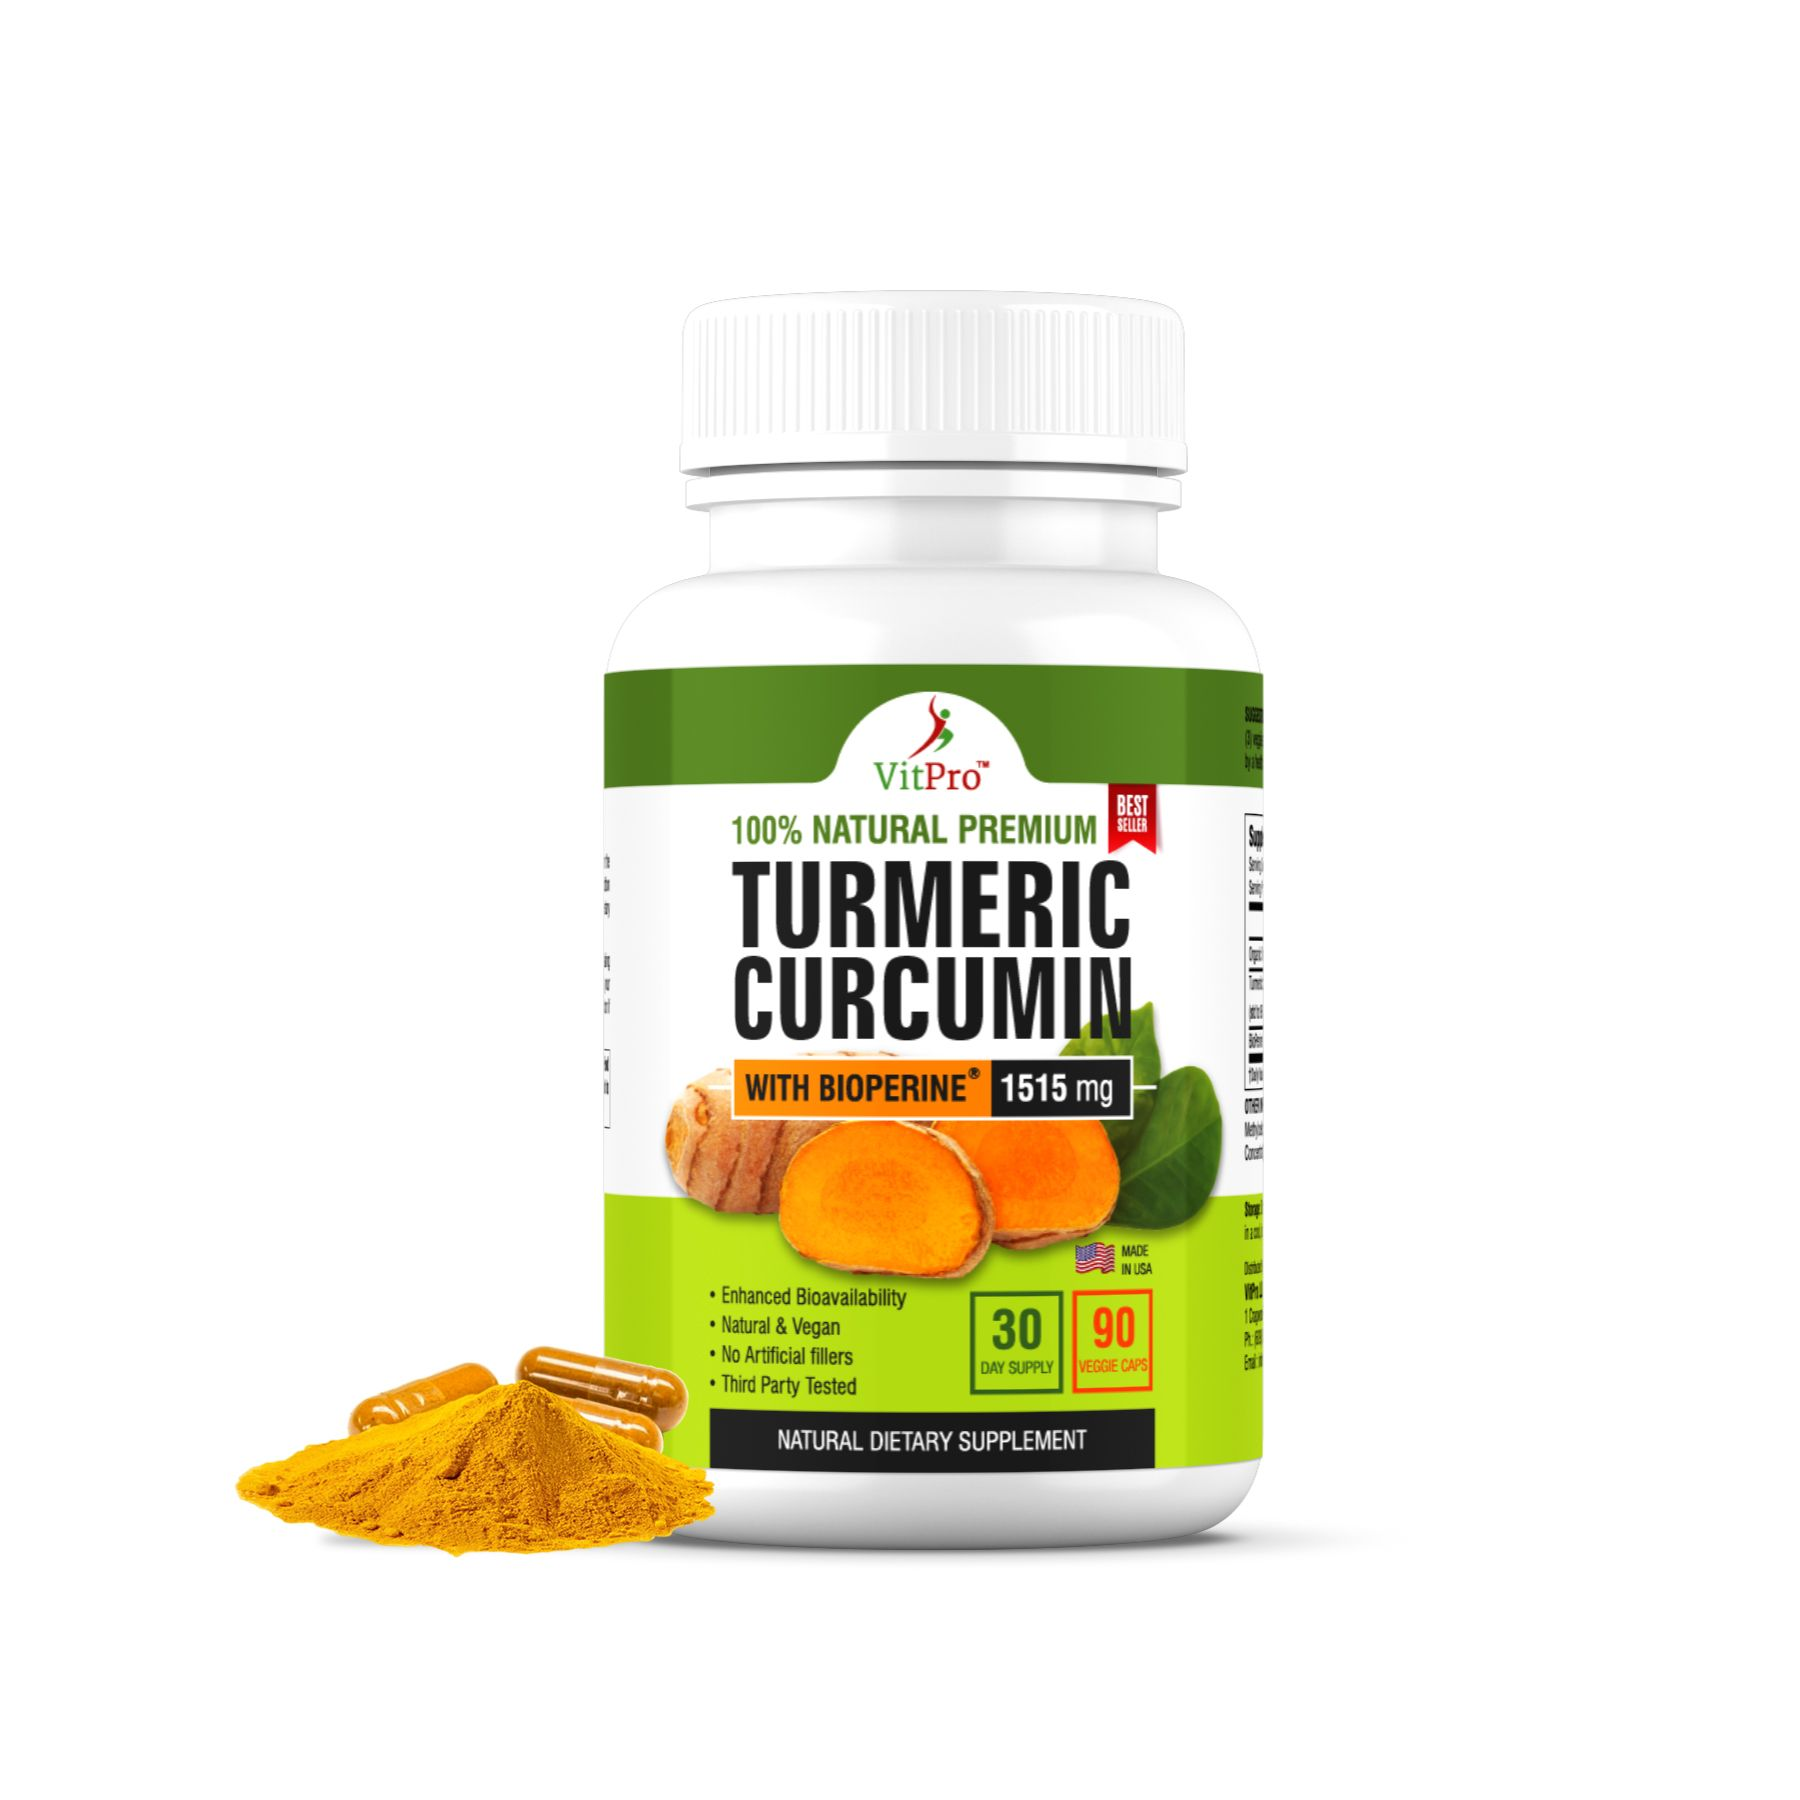 VitPro Turmeric Curcumin with BioPerine 1515mg Natural Joint&Healthy Support-90Capsules